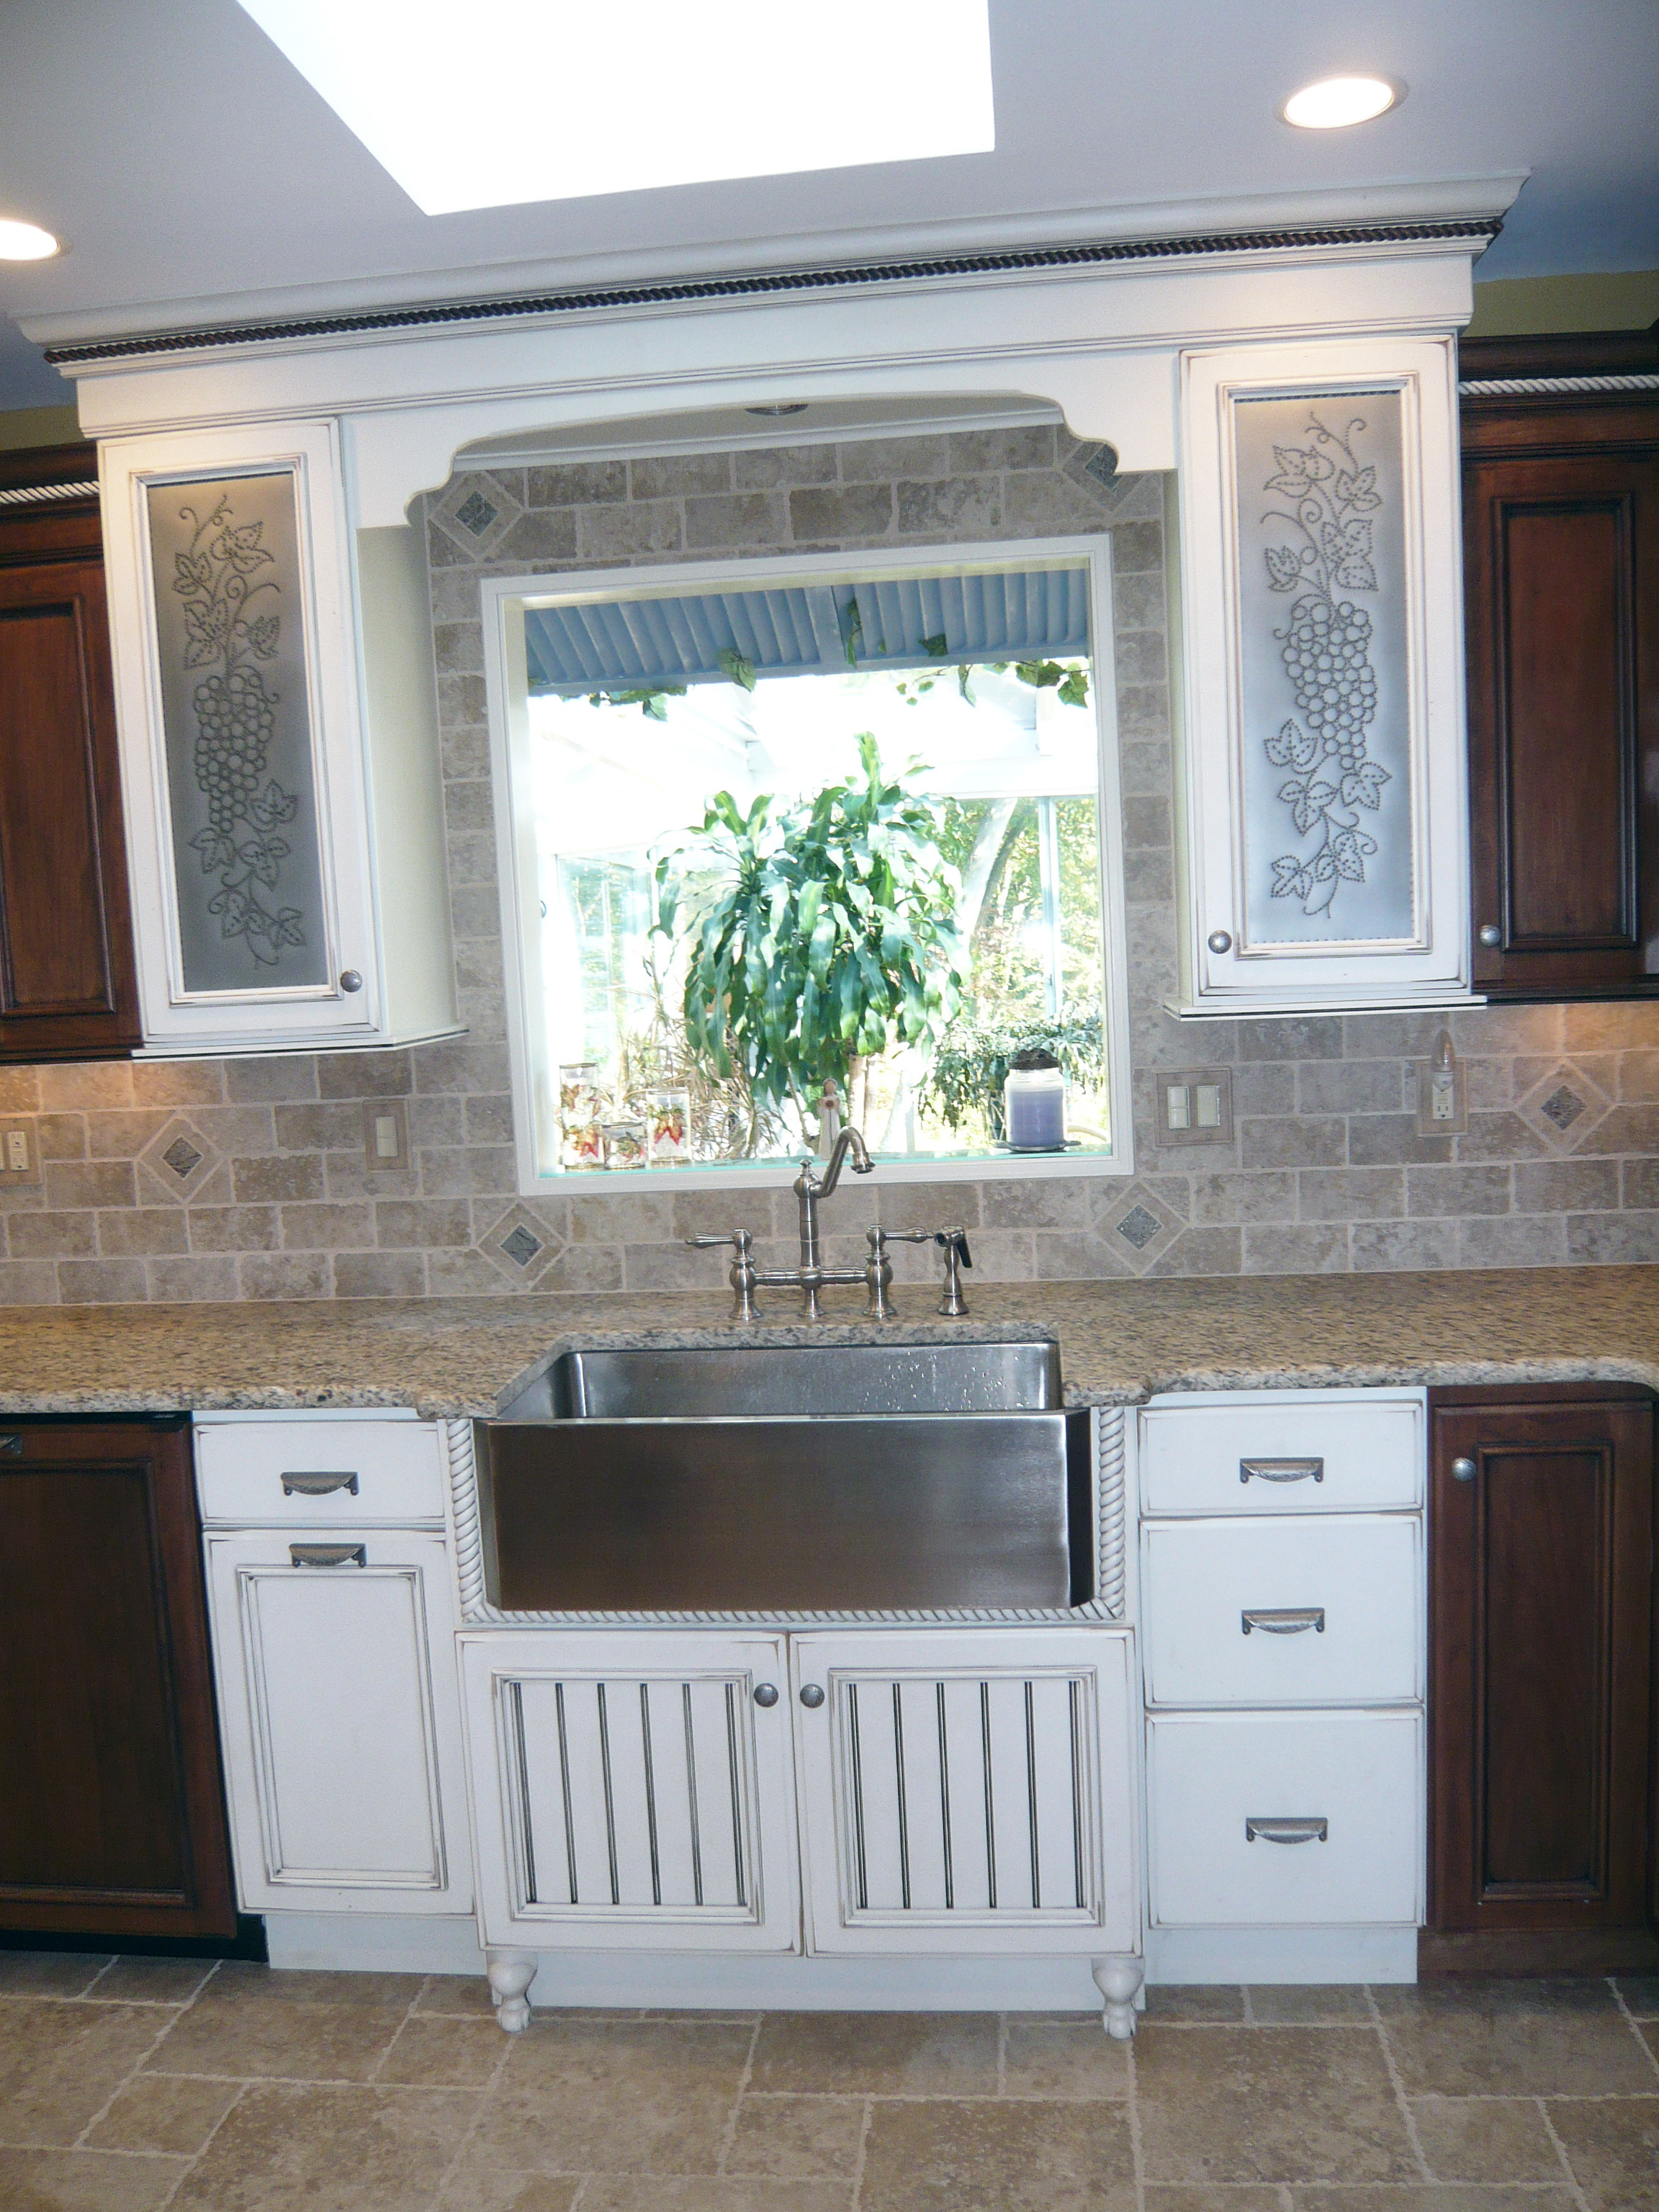 Double Ovens Without Sacrificing Countertop Space Kitchen Design Center